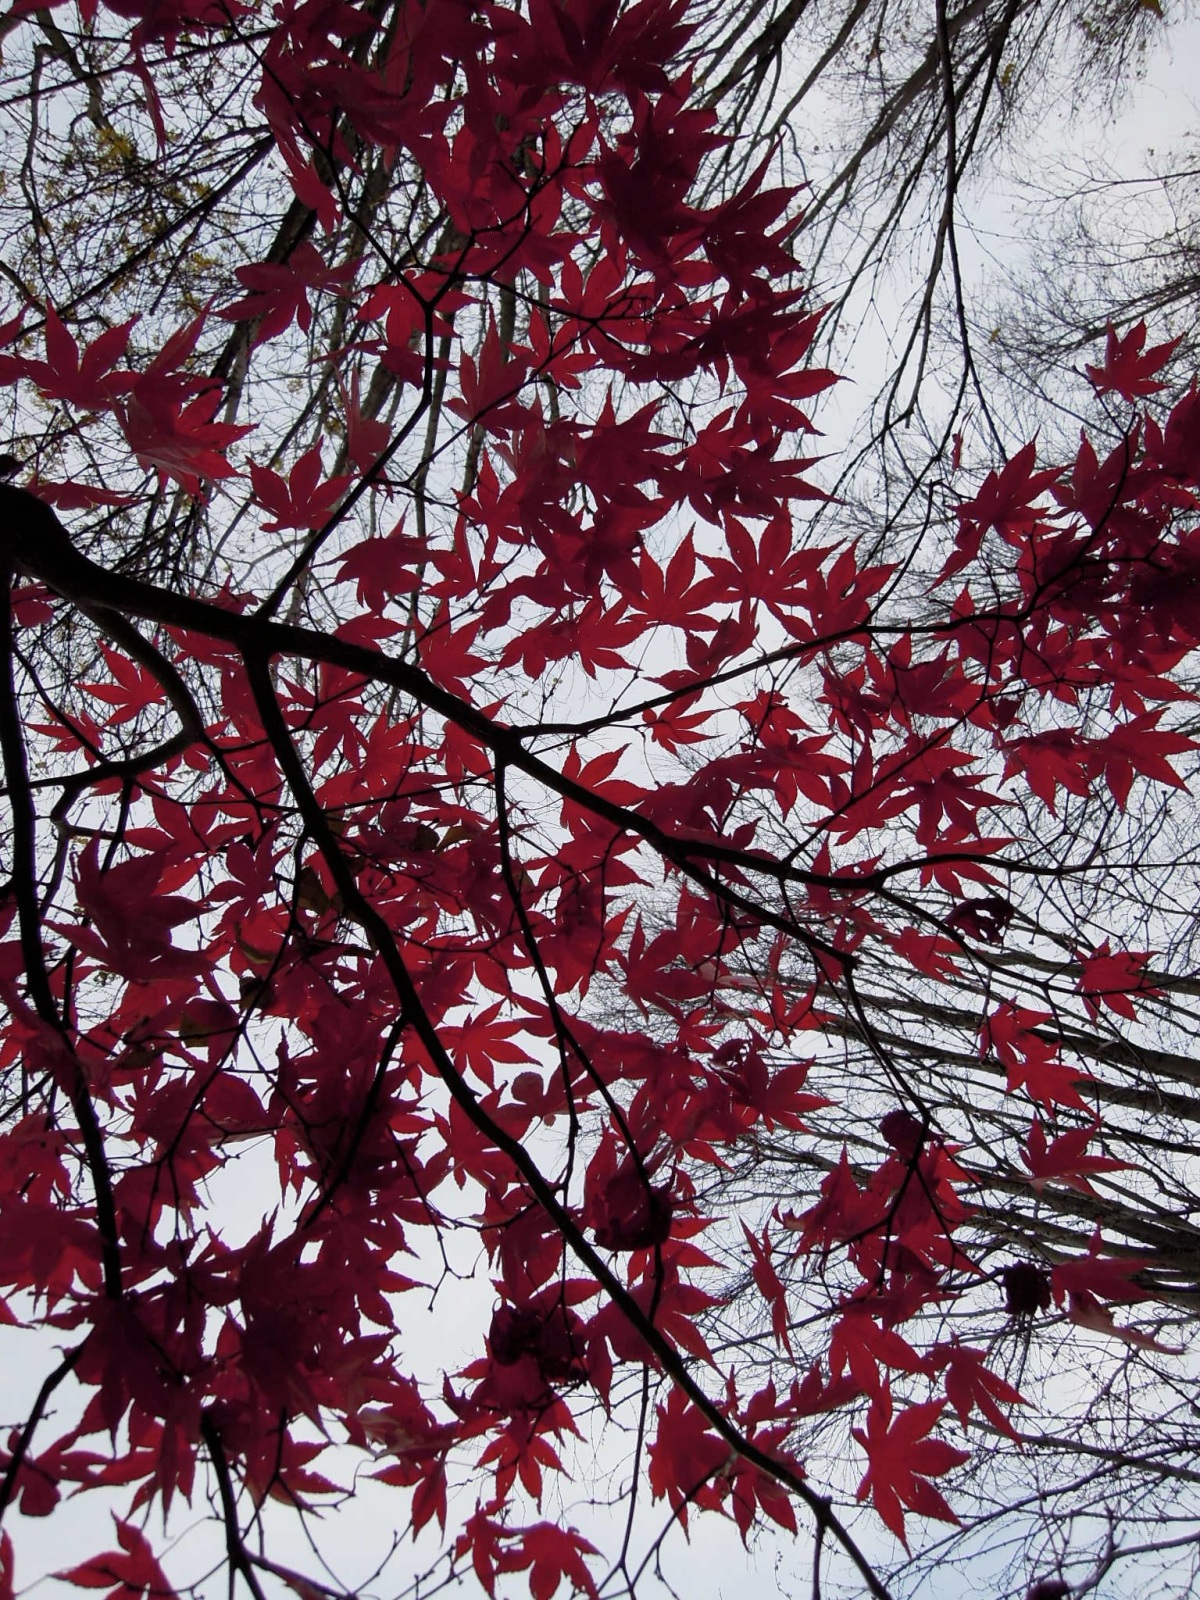 Looking through red leaves to the sky